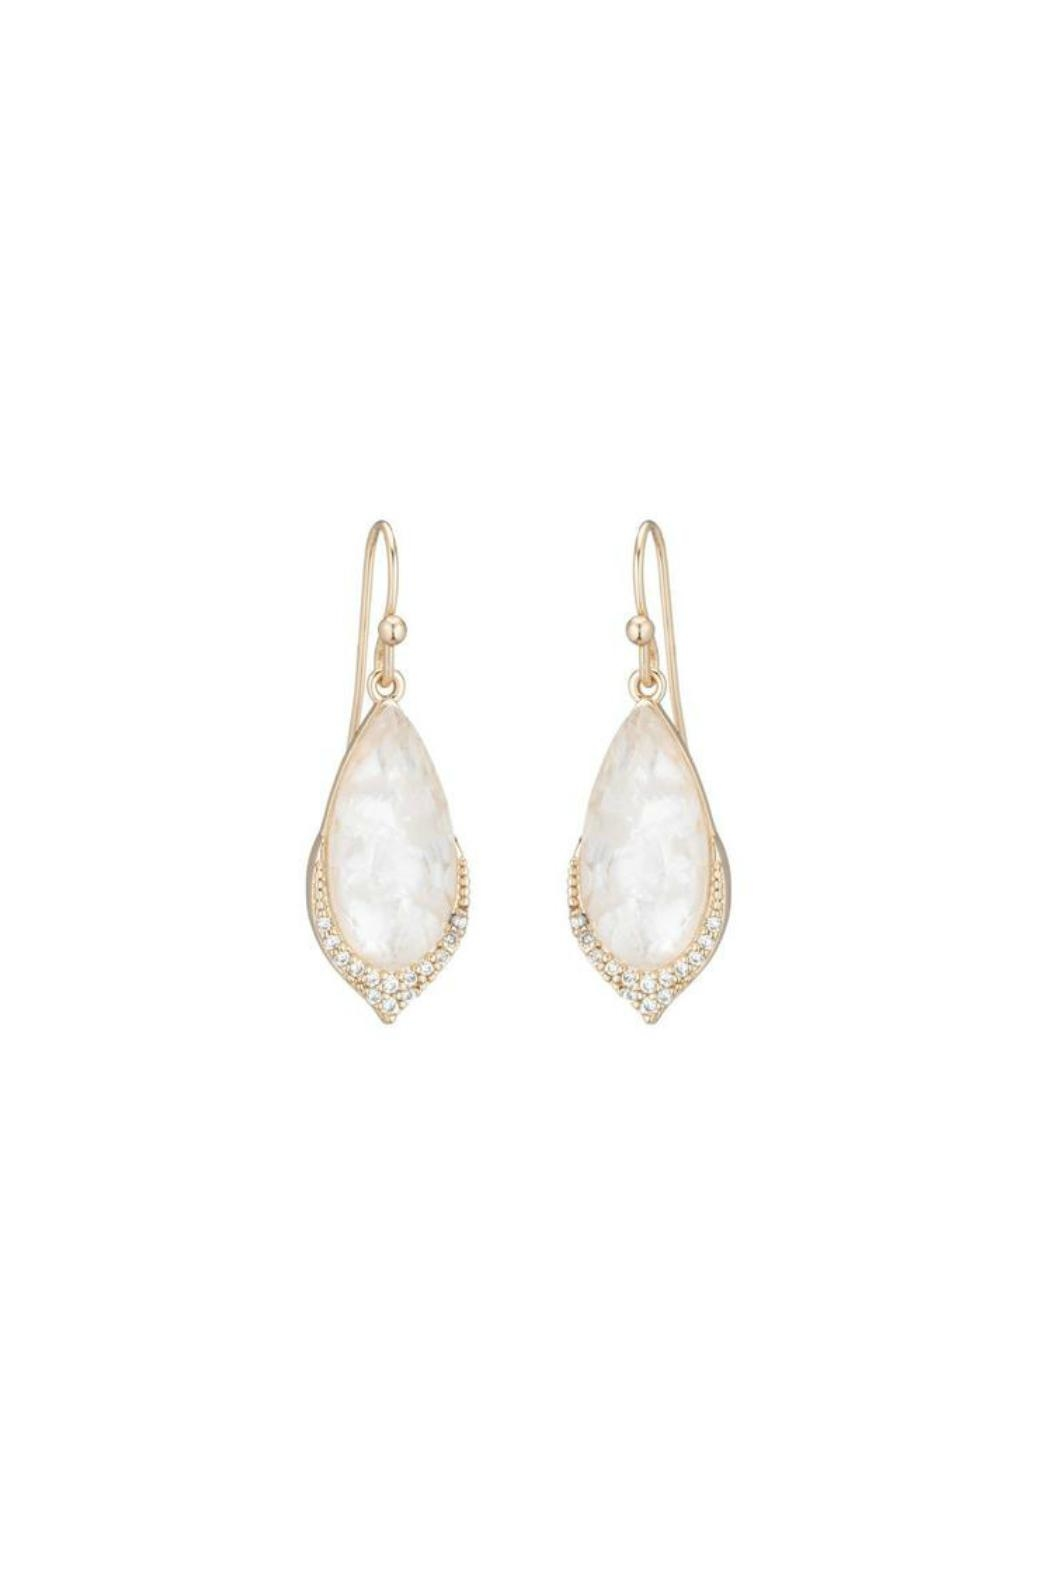 Gemma Collection Elegant Pave Earrings - Front Cropped Image